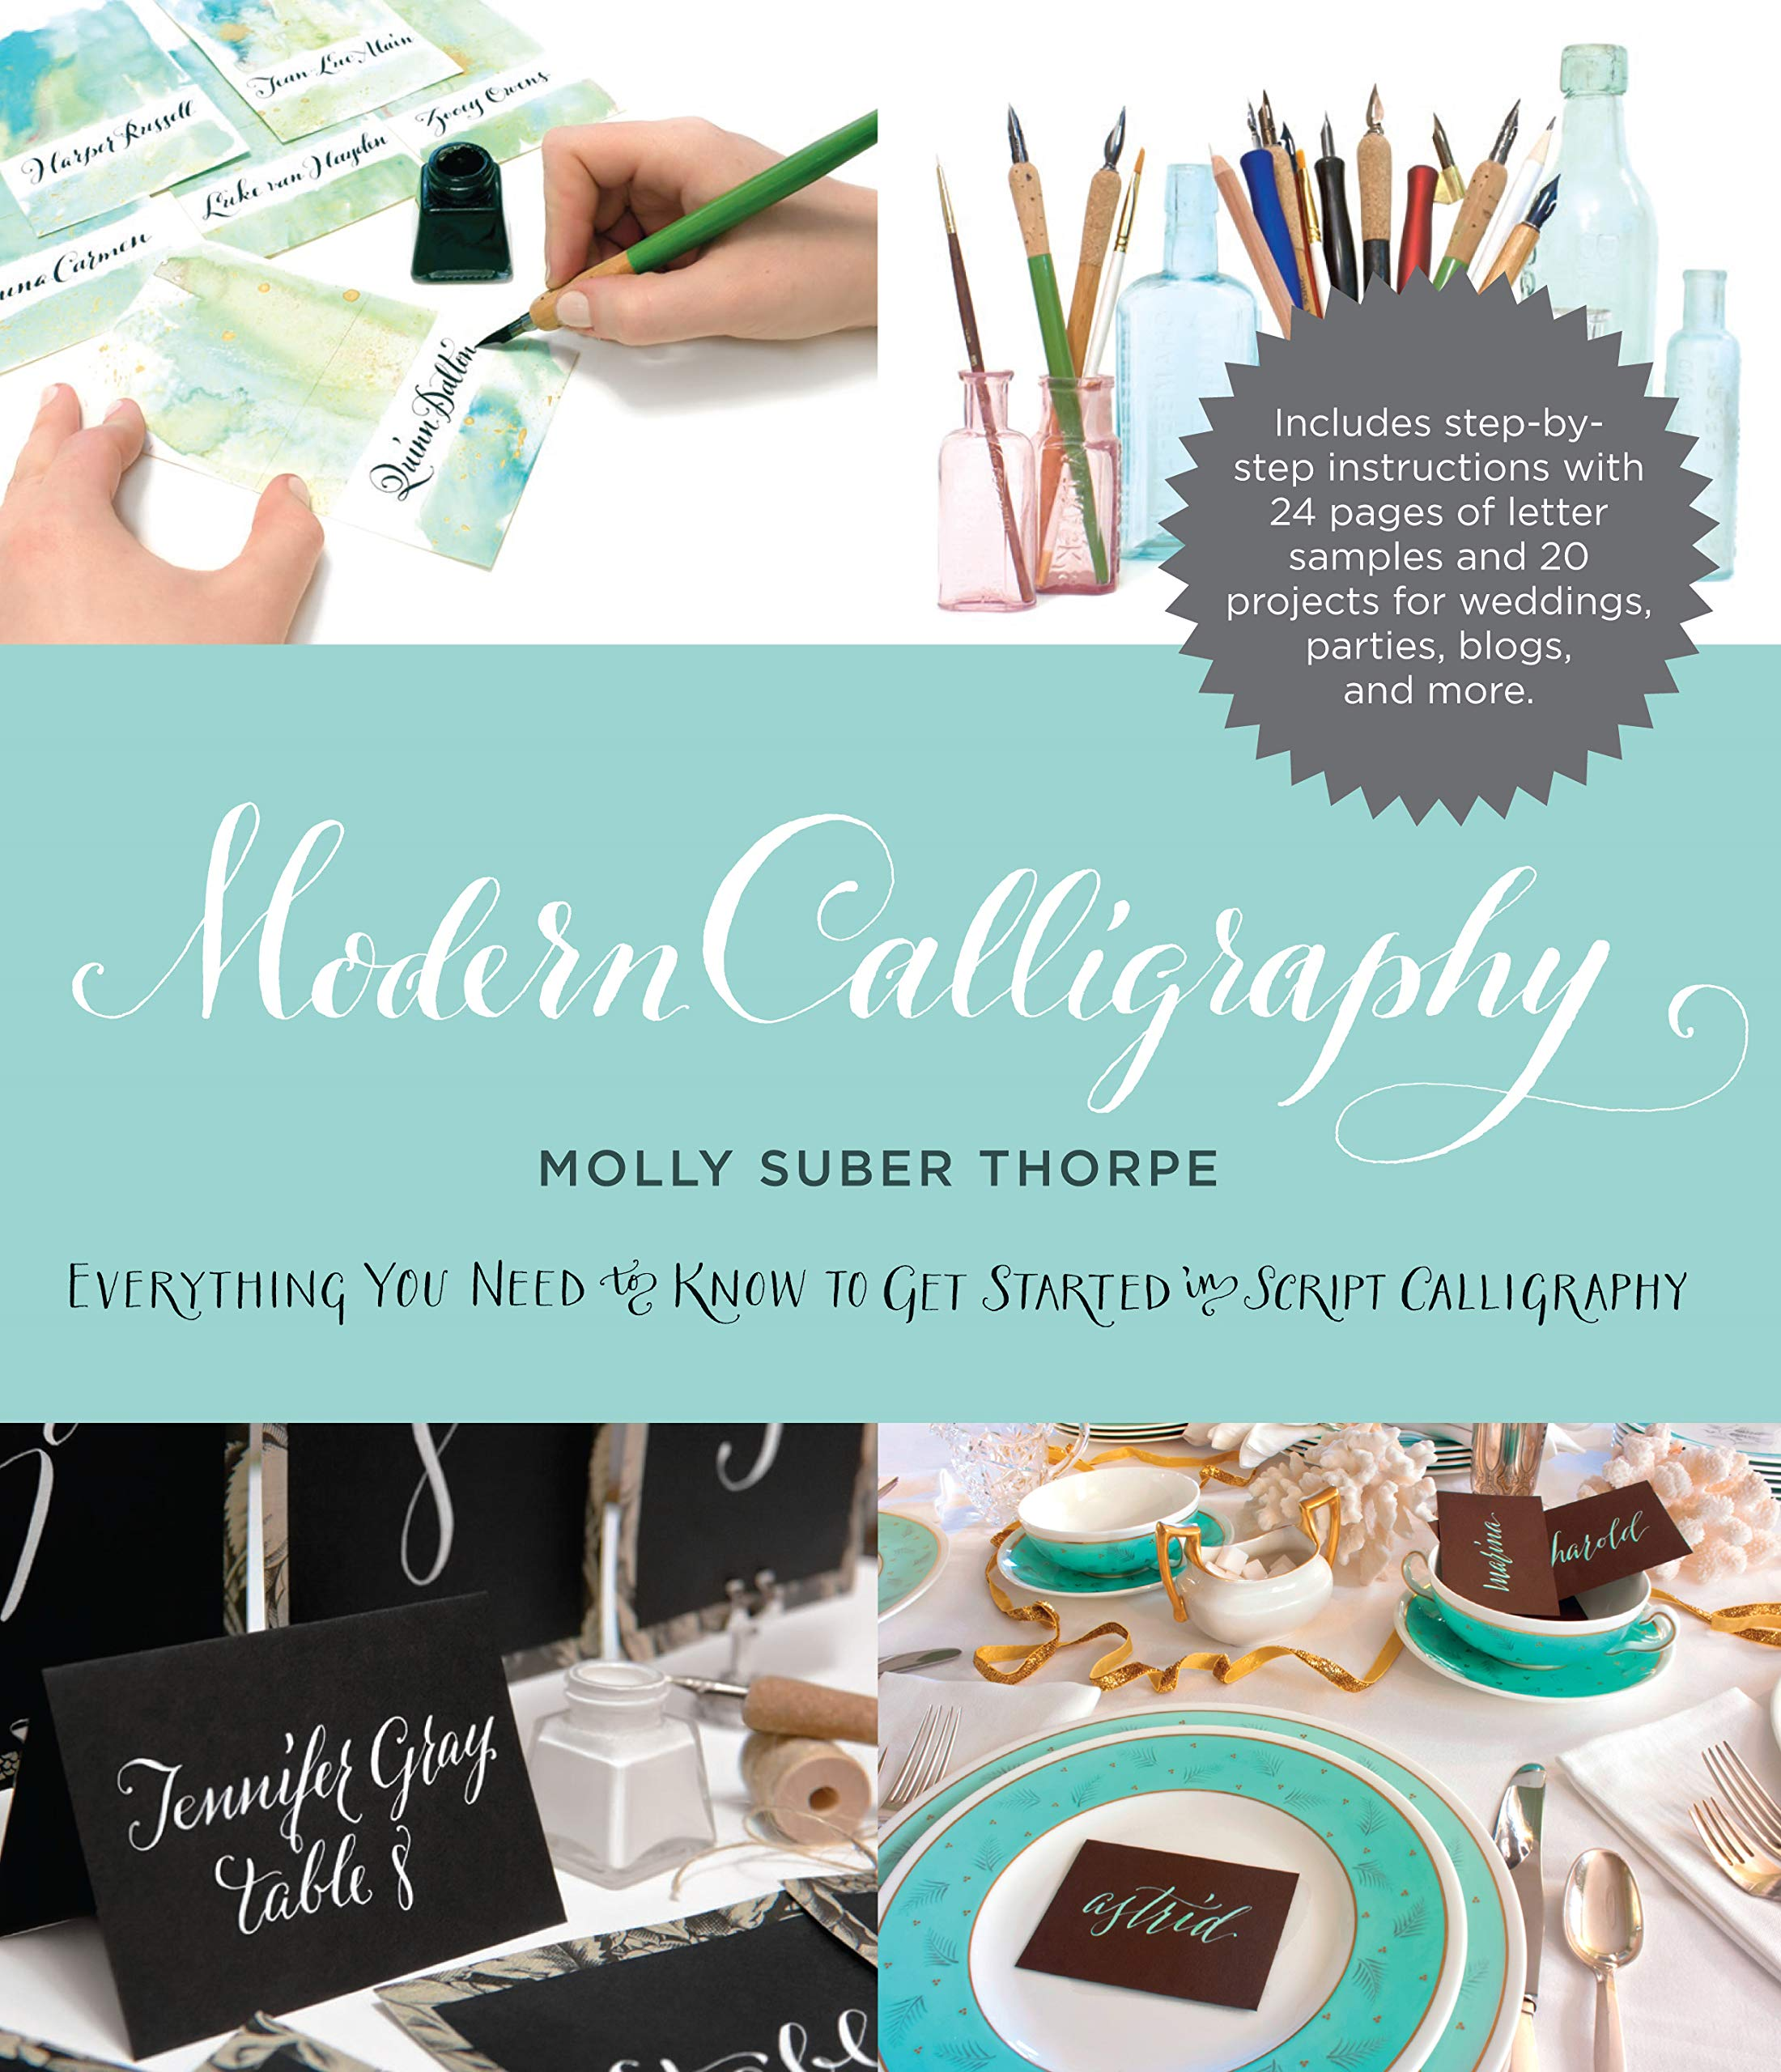 057623866f8 Modern Calligraphy: Everything You Need to Know to Get Started in ...